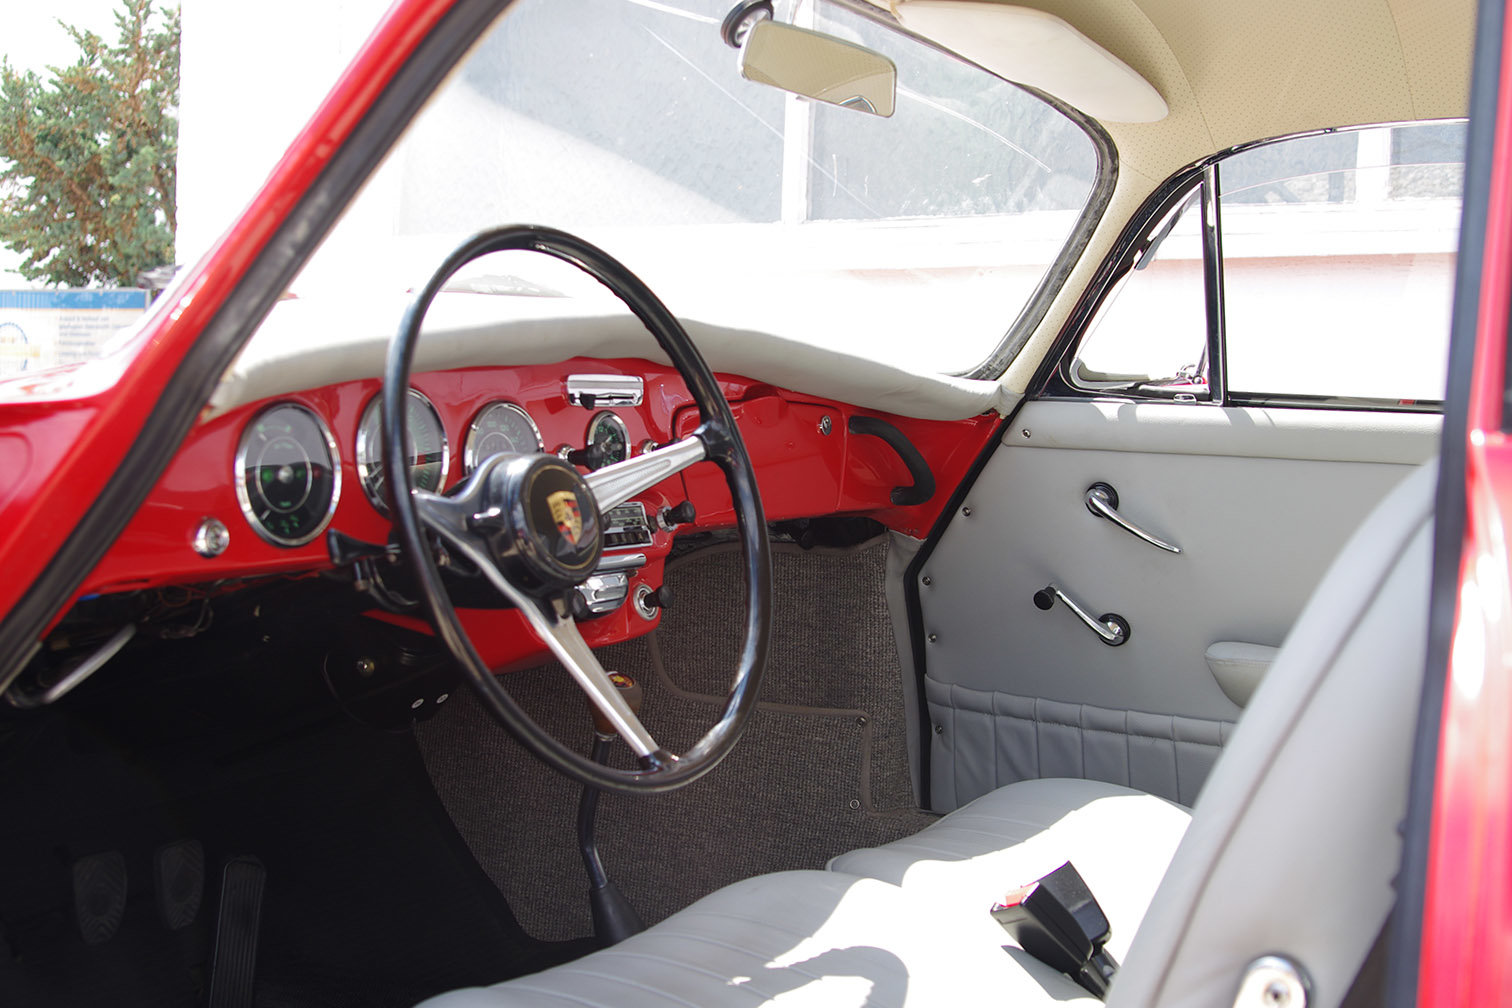 1964 Porsche 356 C Coupé *restored* MATCHING NUMBERS* For Sale (picture 5 of 6)